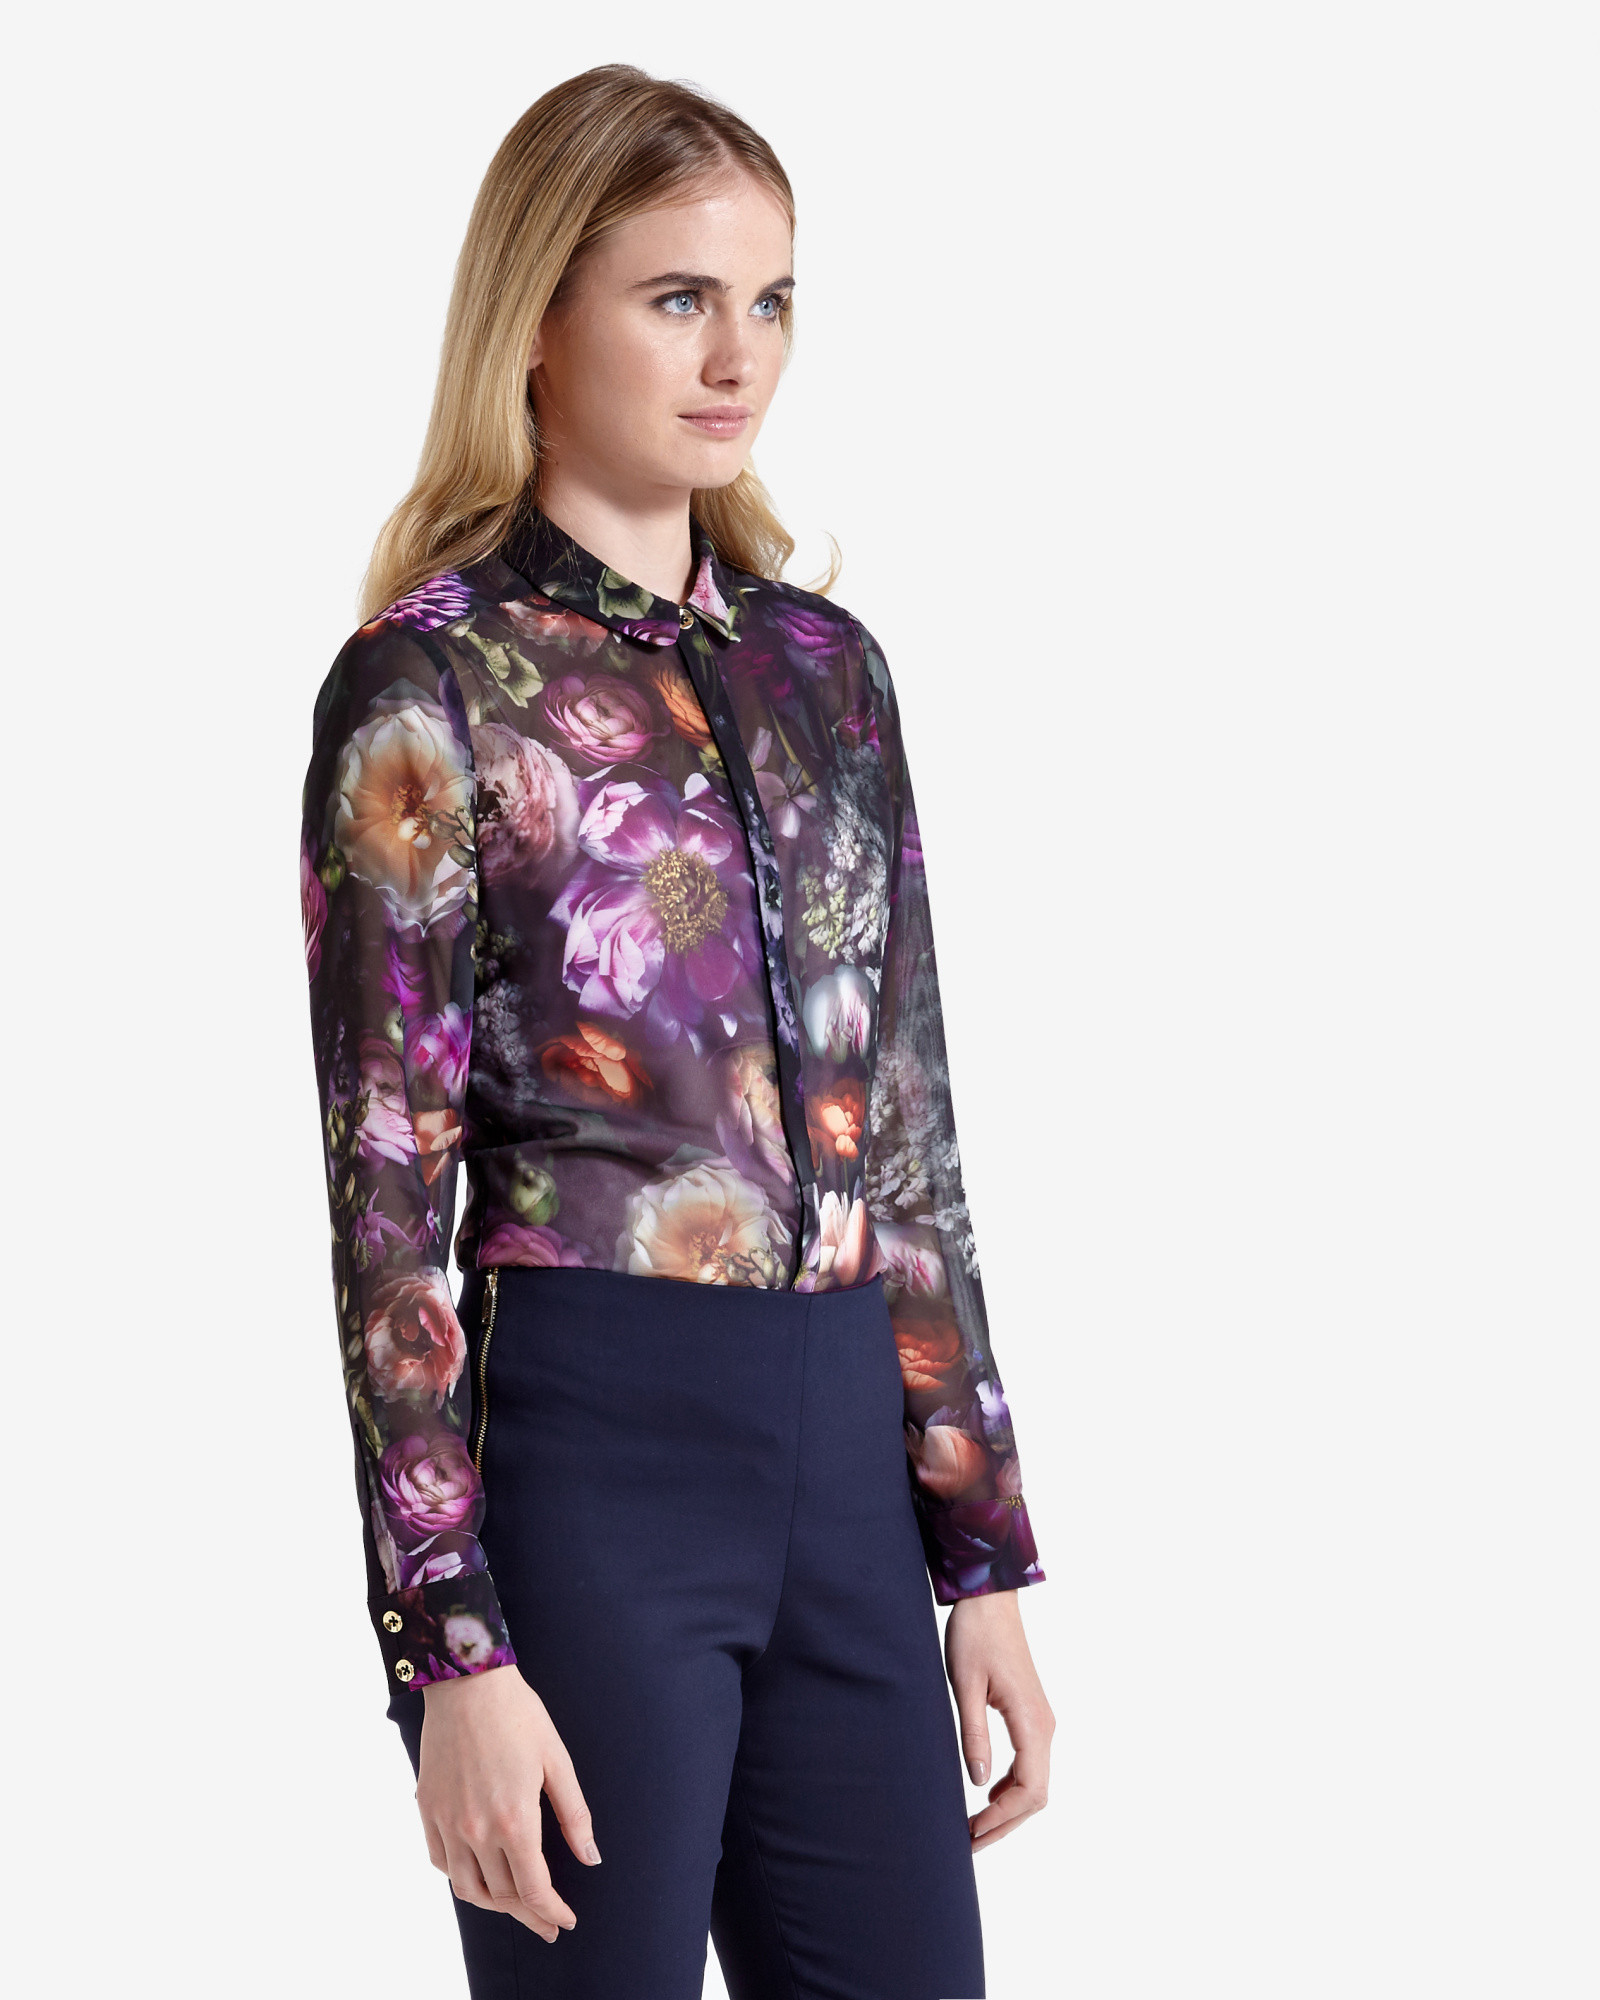 Ted baker malinda shadow floral shirt in black lyst for Ted baker floral print shirt